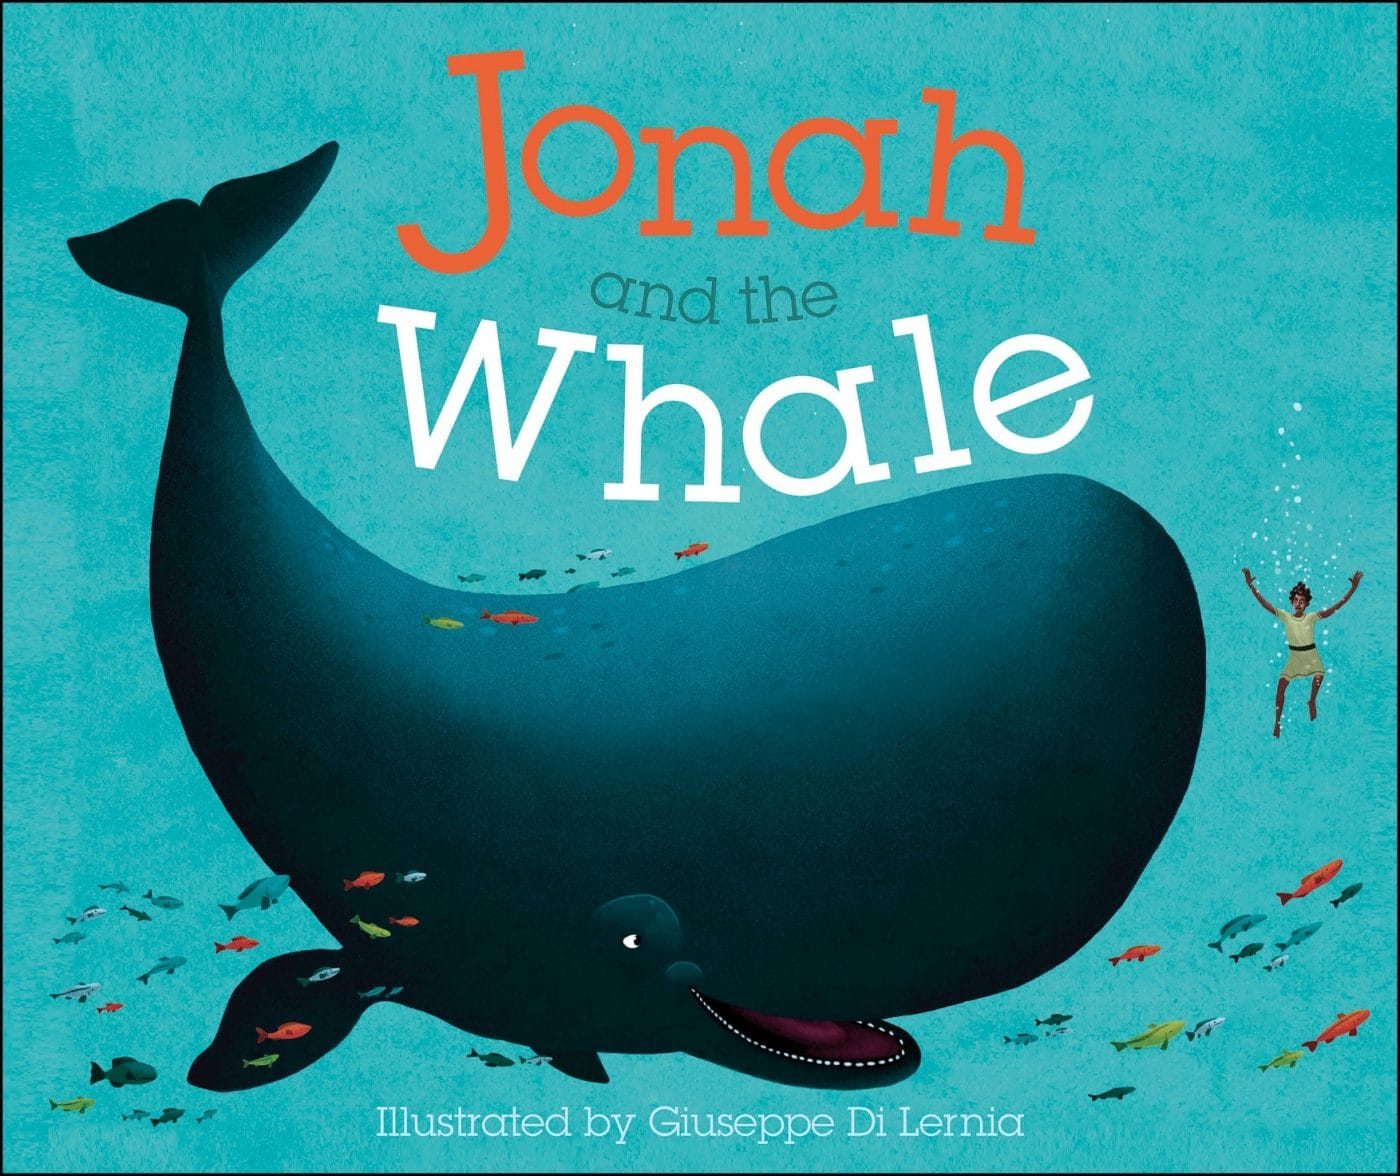 Jonah and the Whale - DK Canada - Book Review by Oombawka Design